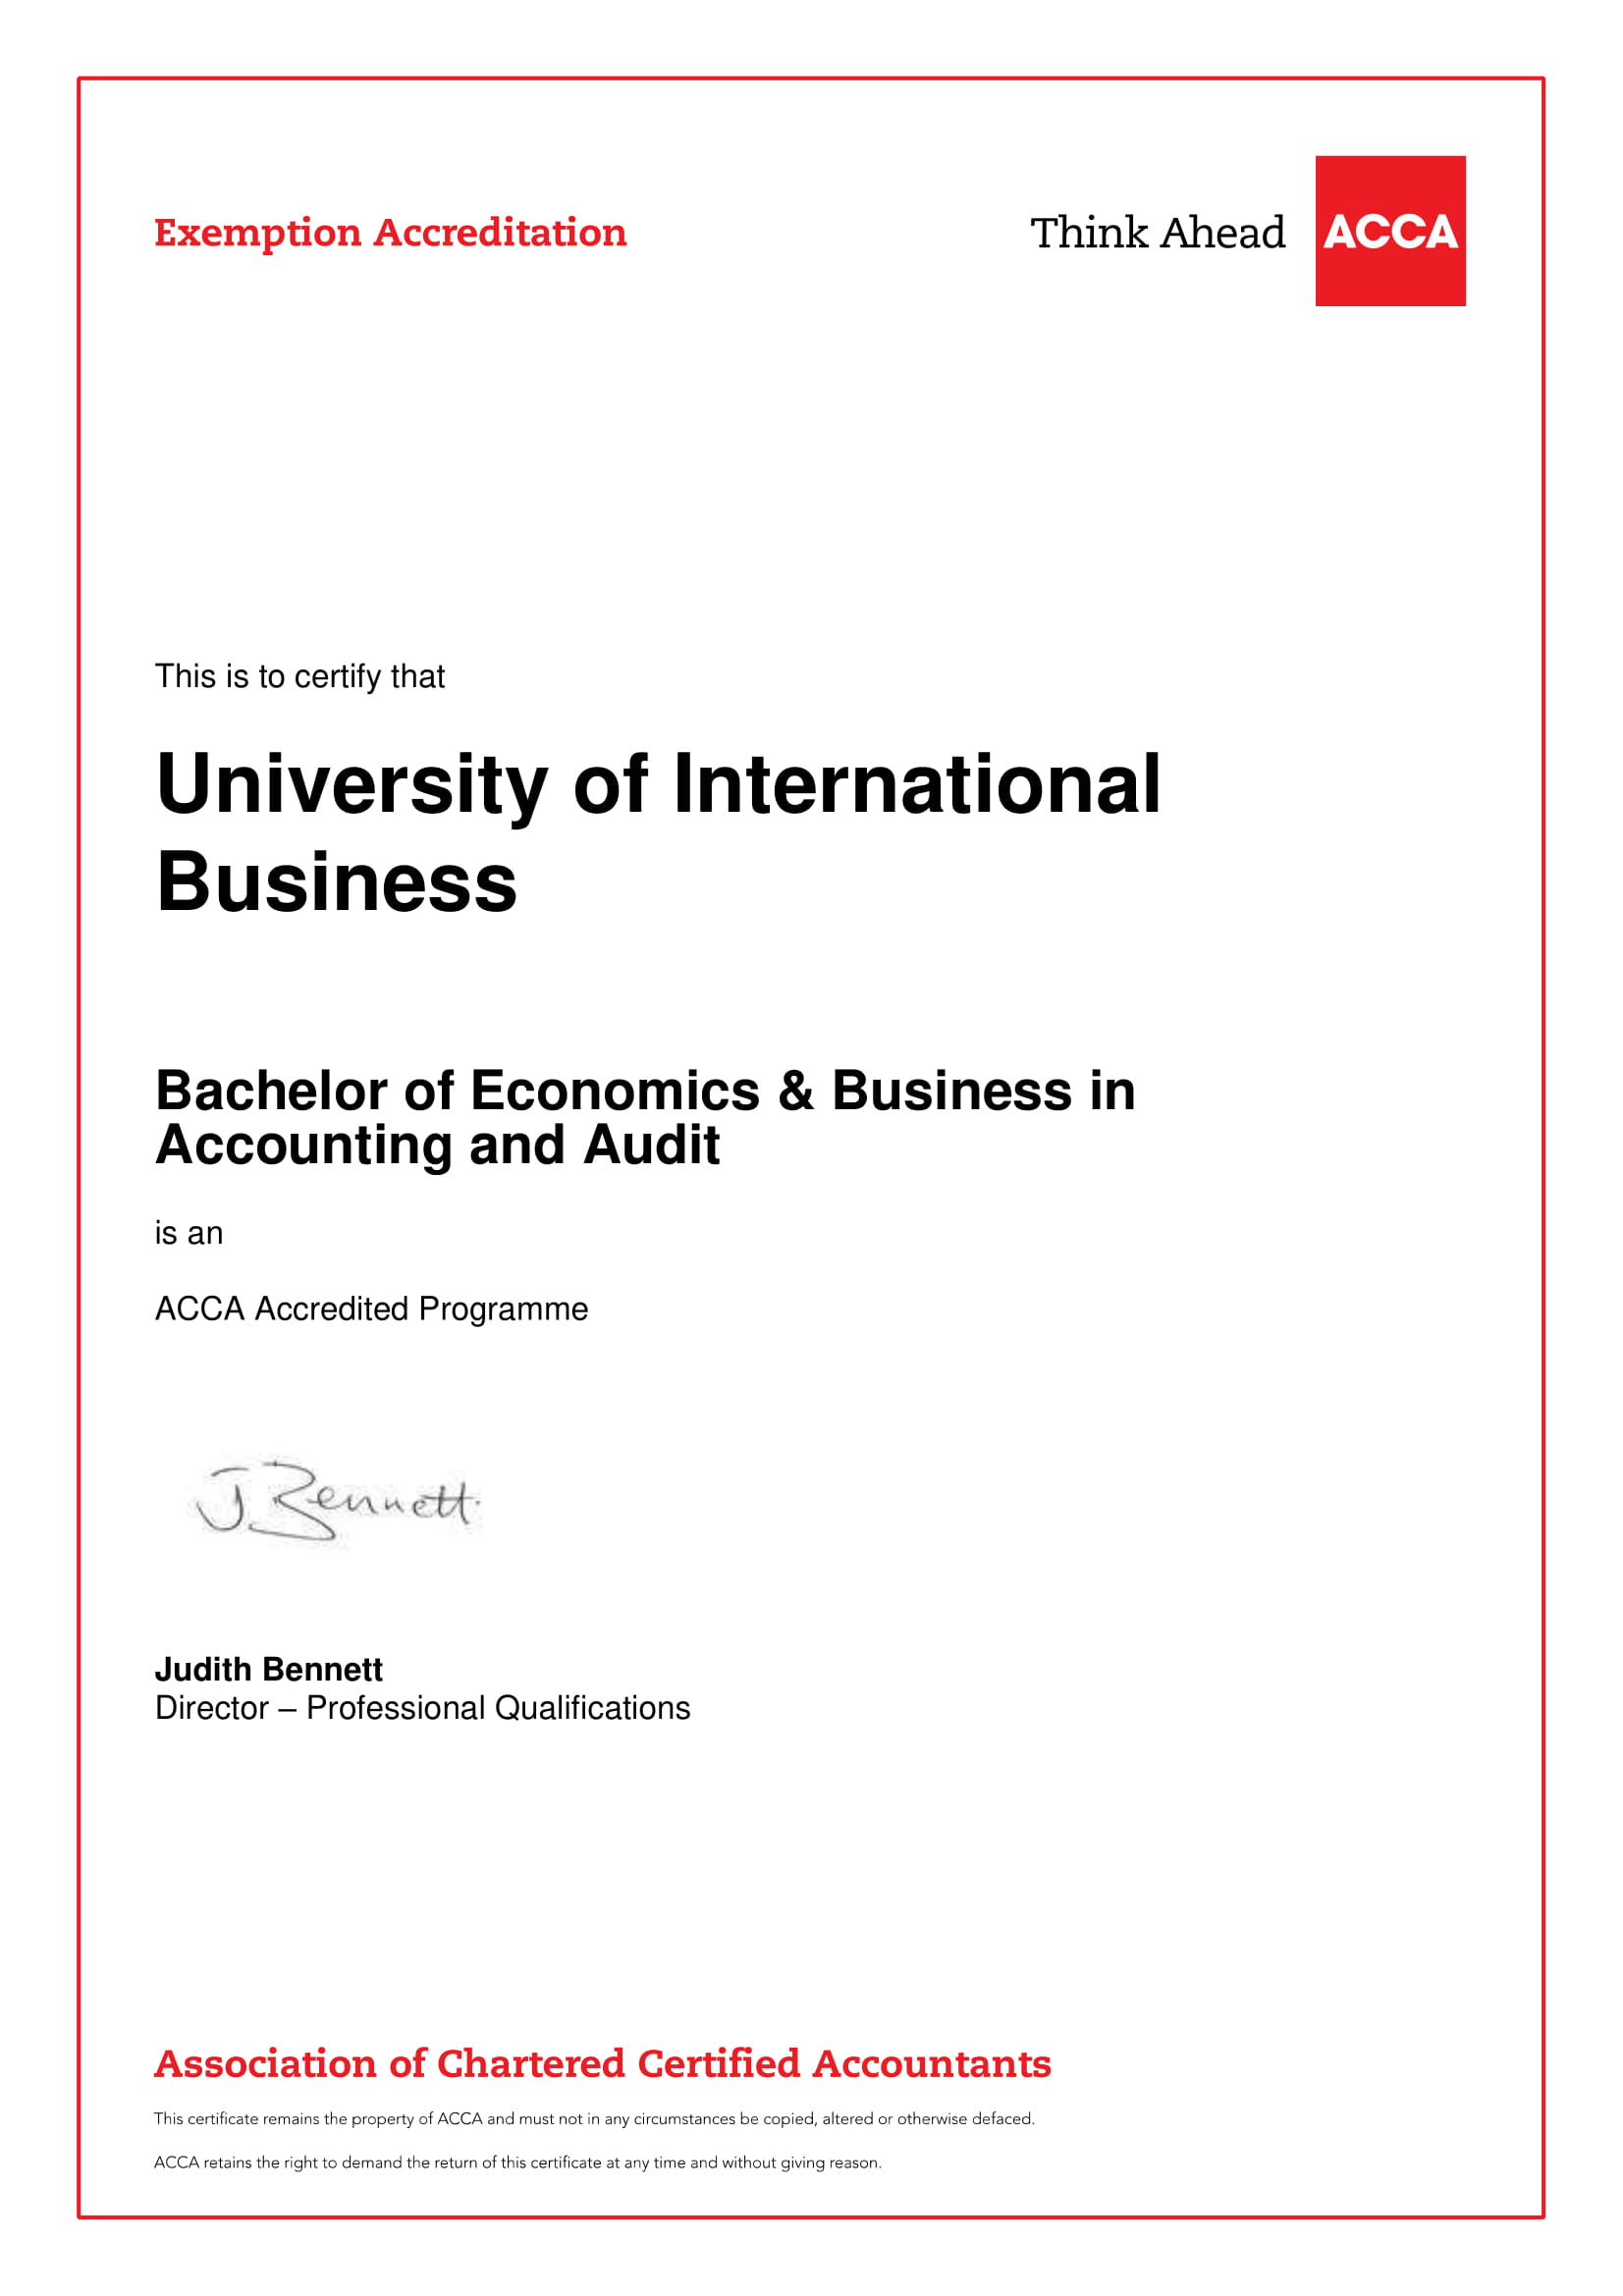 Bachelor of Econ & Bus in Accounting & Audit - Exemptions Certificate-1